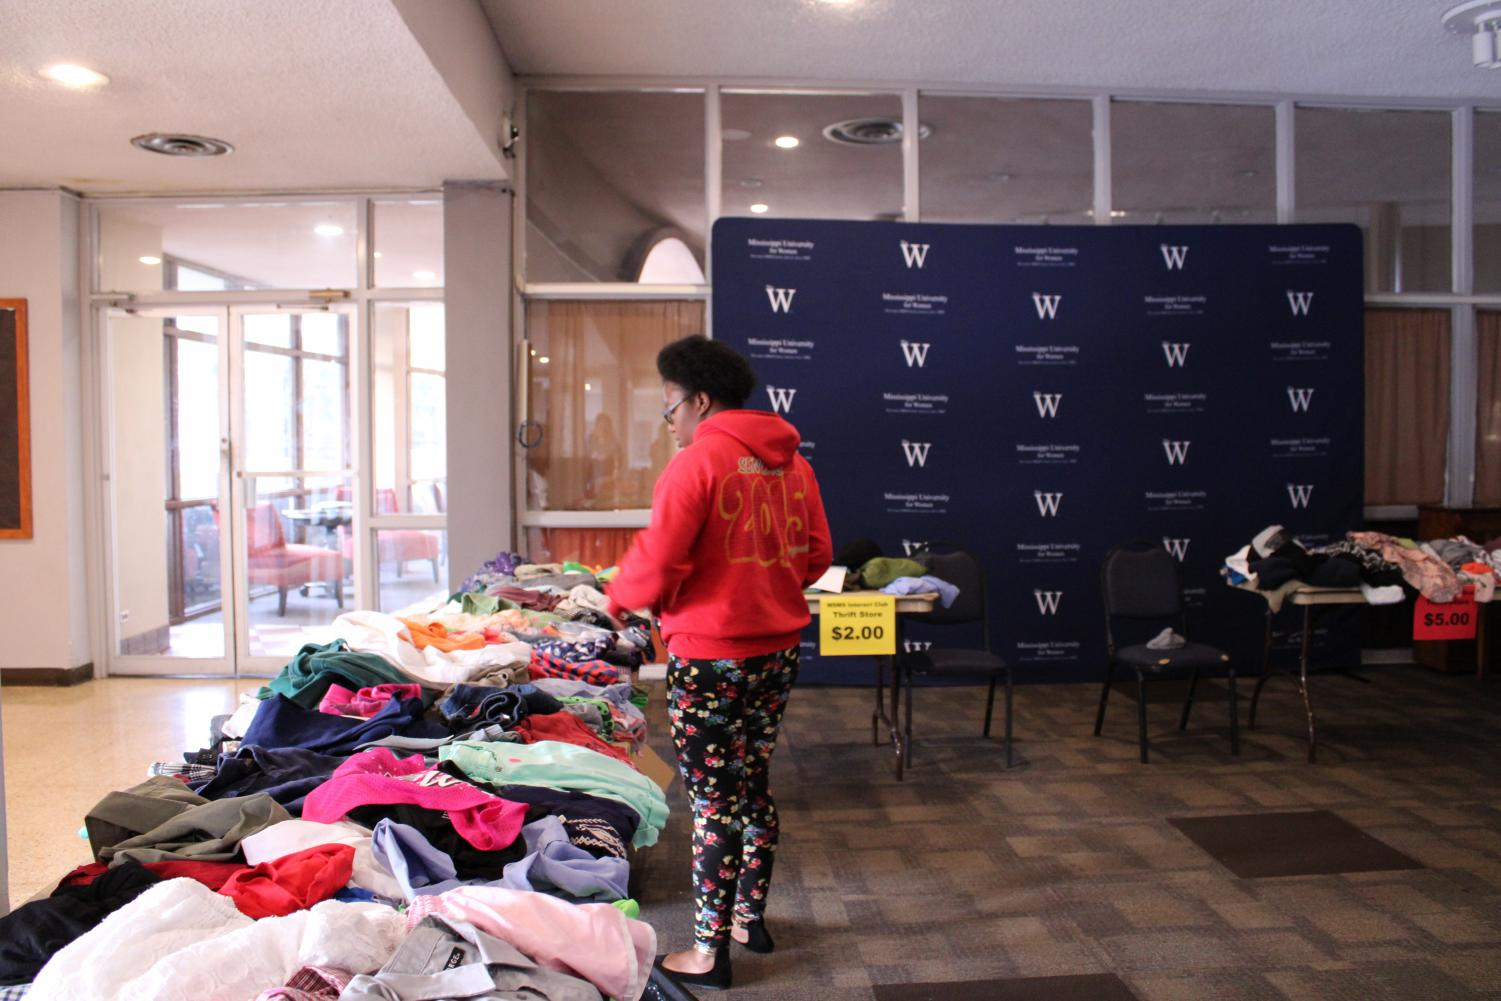 A student looks at one of the tables of donated clothes, hoping to get a steal.